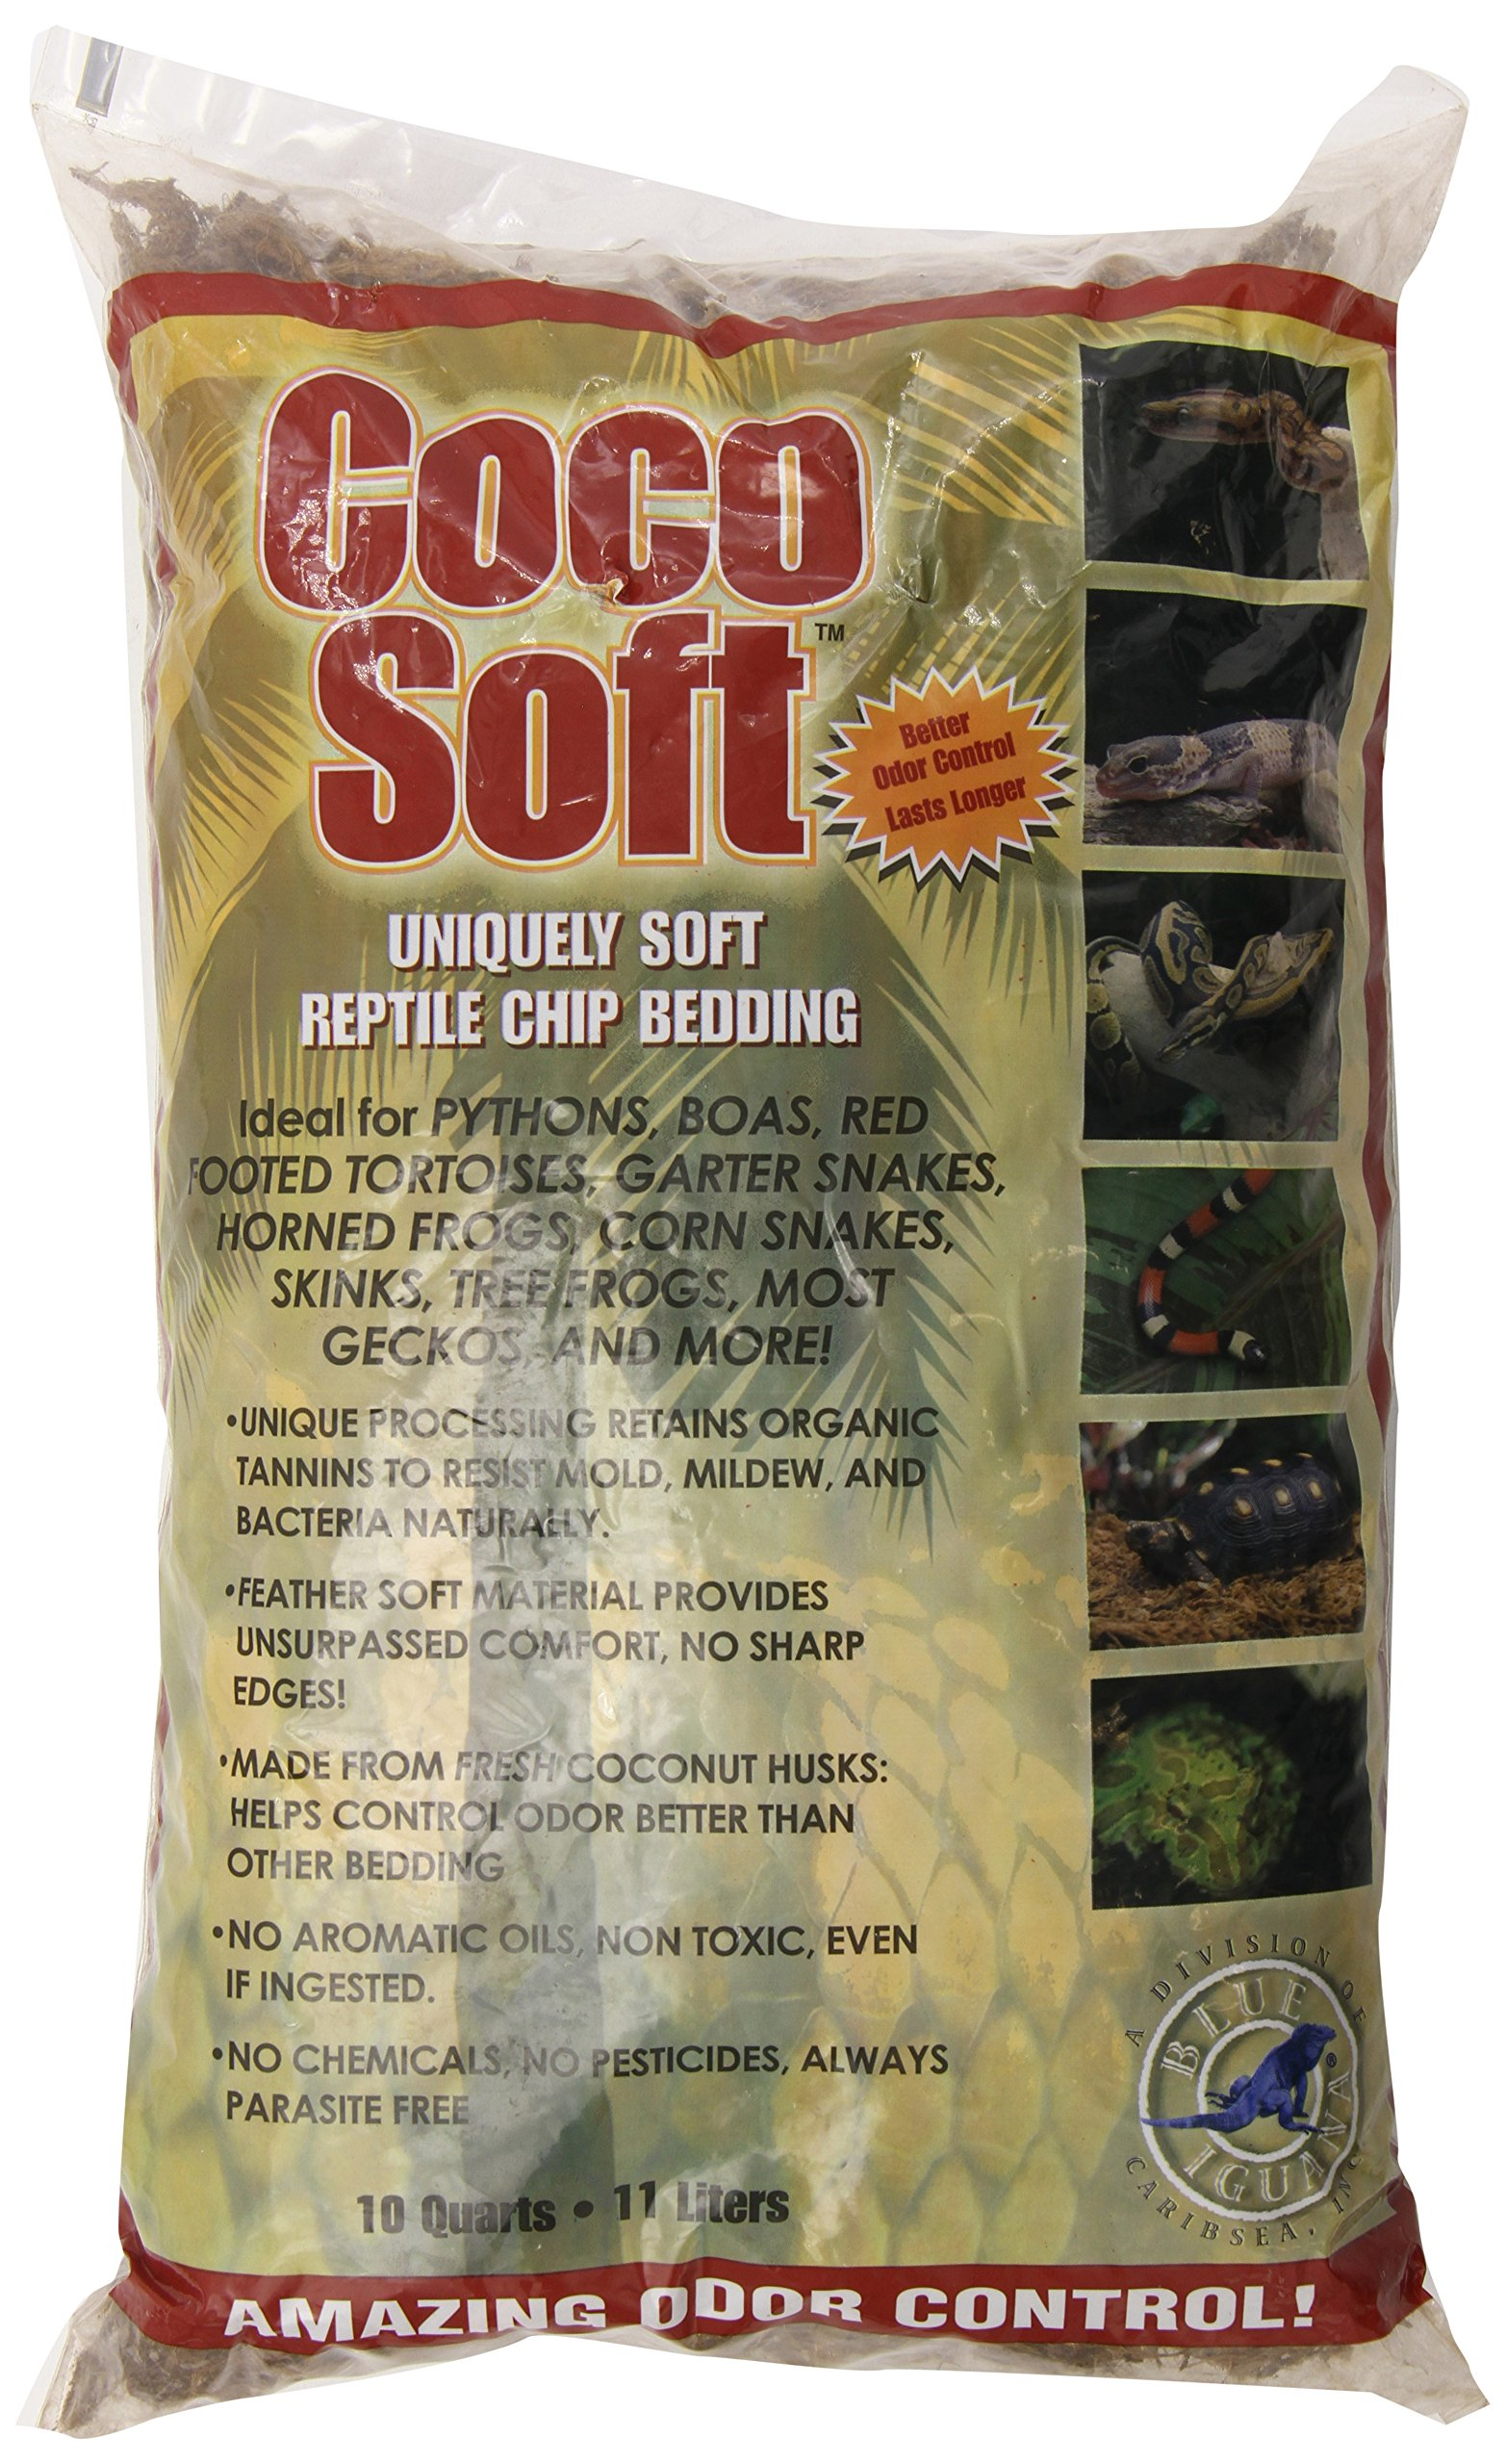 Carib Sea SCS00211 Coco Soft Reptiles Bedding, Coarse Chip, 10-Quart by Carib Sea